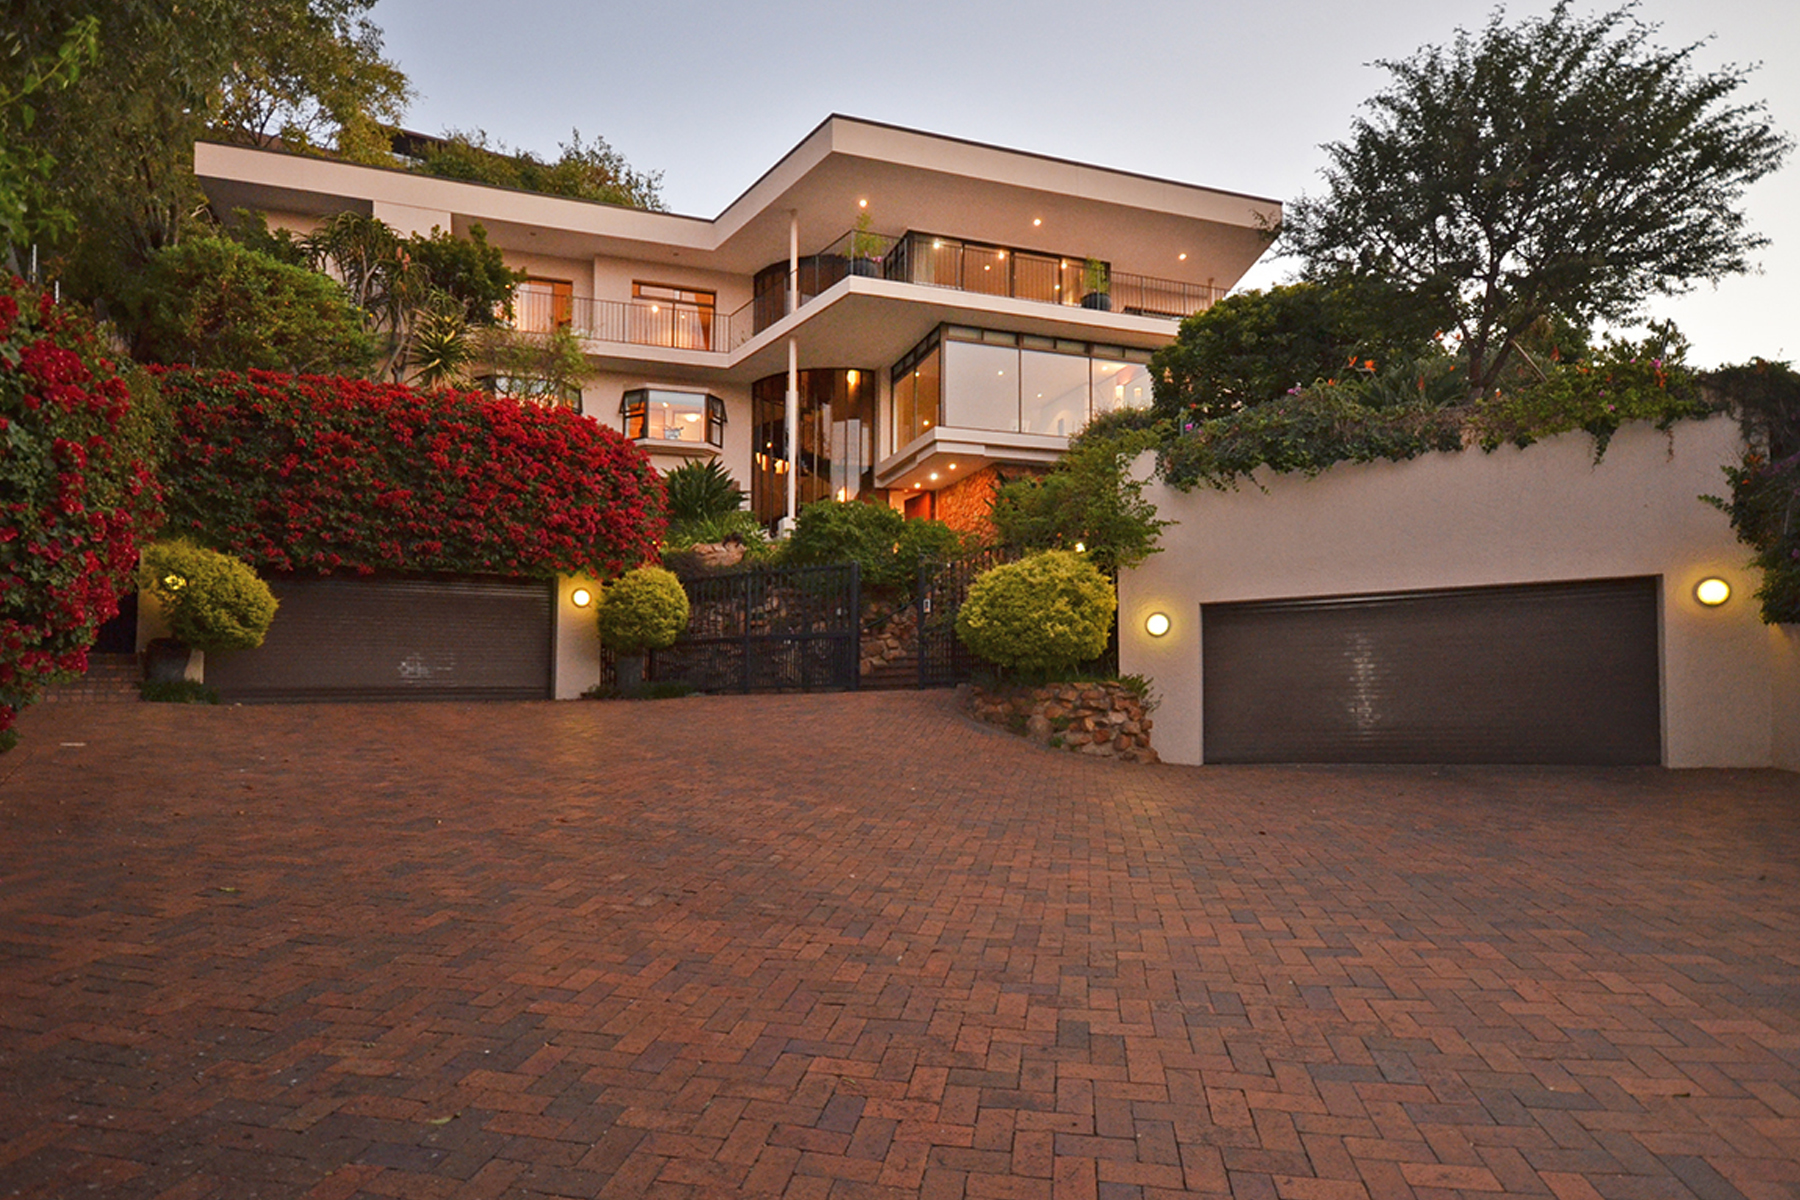 Single Family Home for Sale at Linksfield/Bedfordview Johannesburg, Gauteng, 2007 South Africa